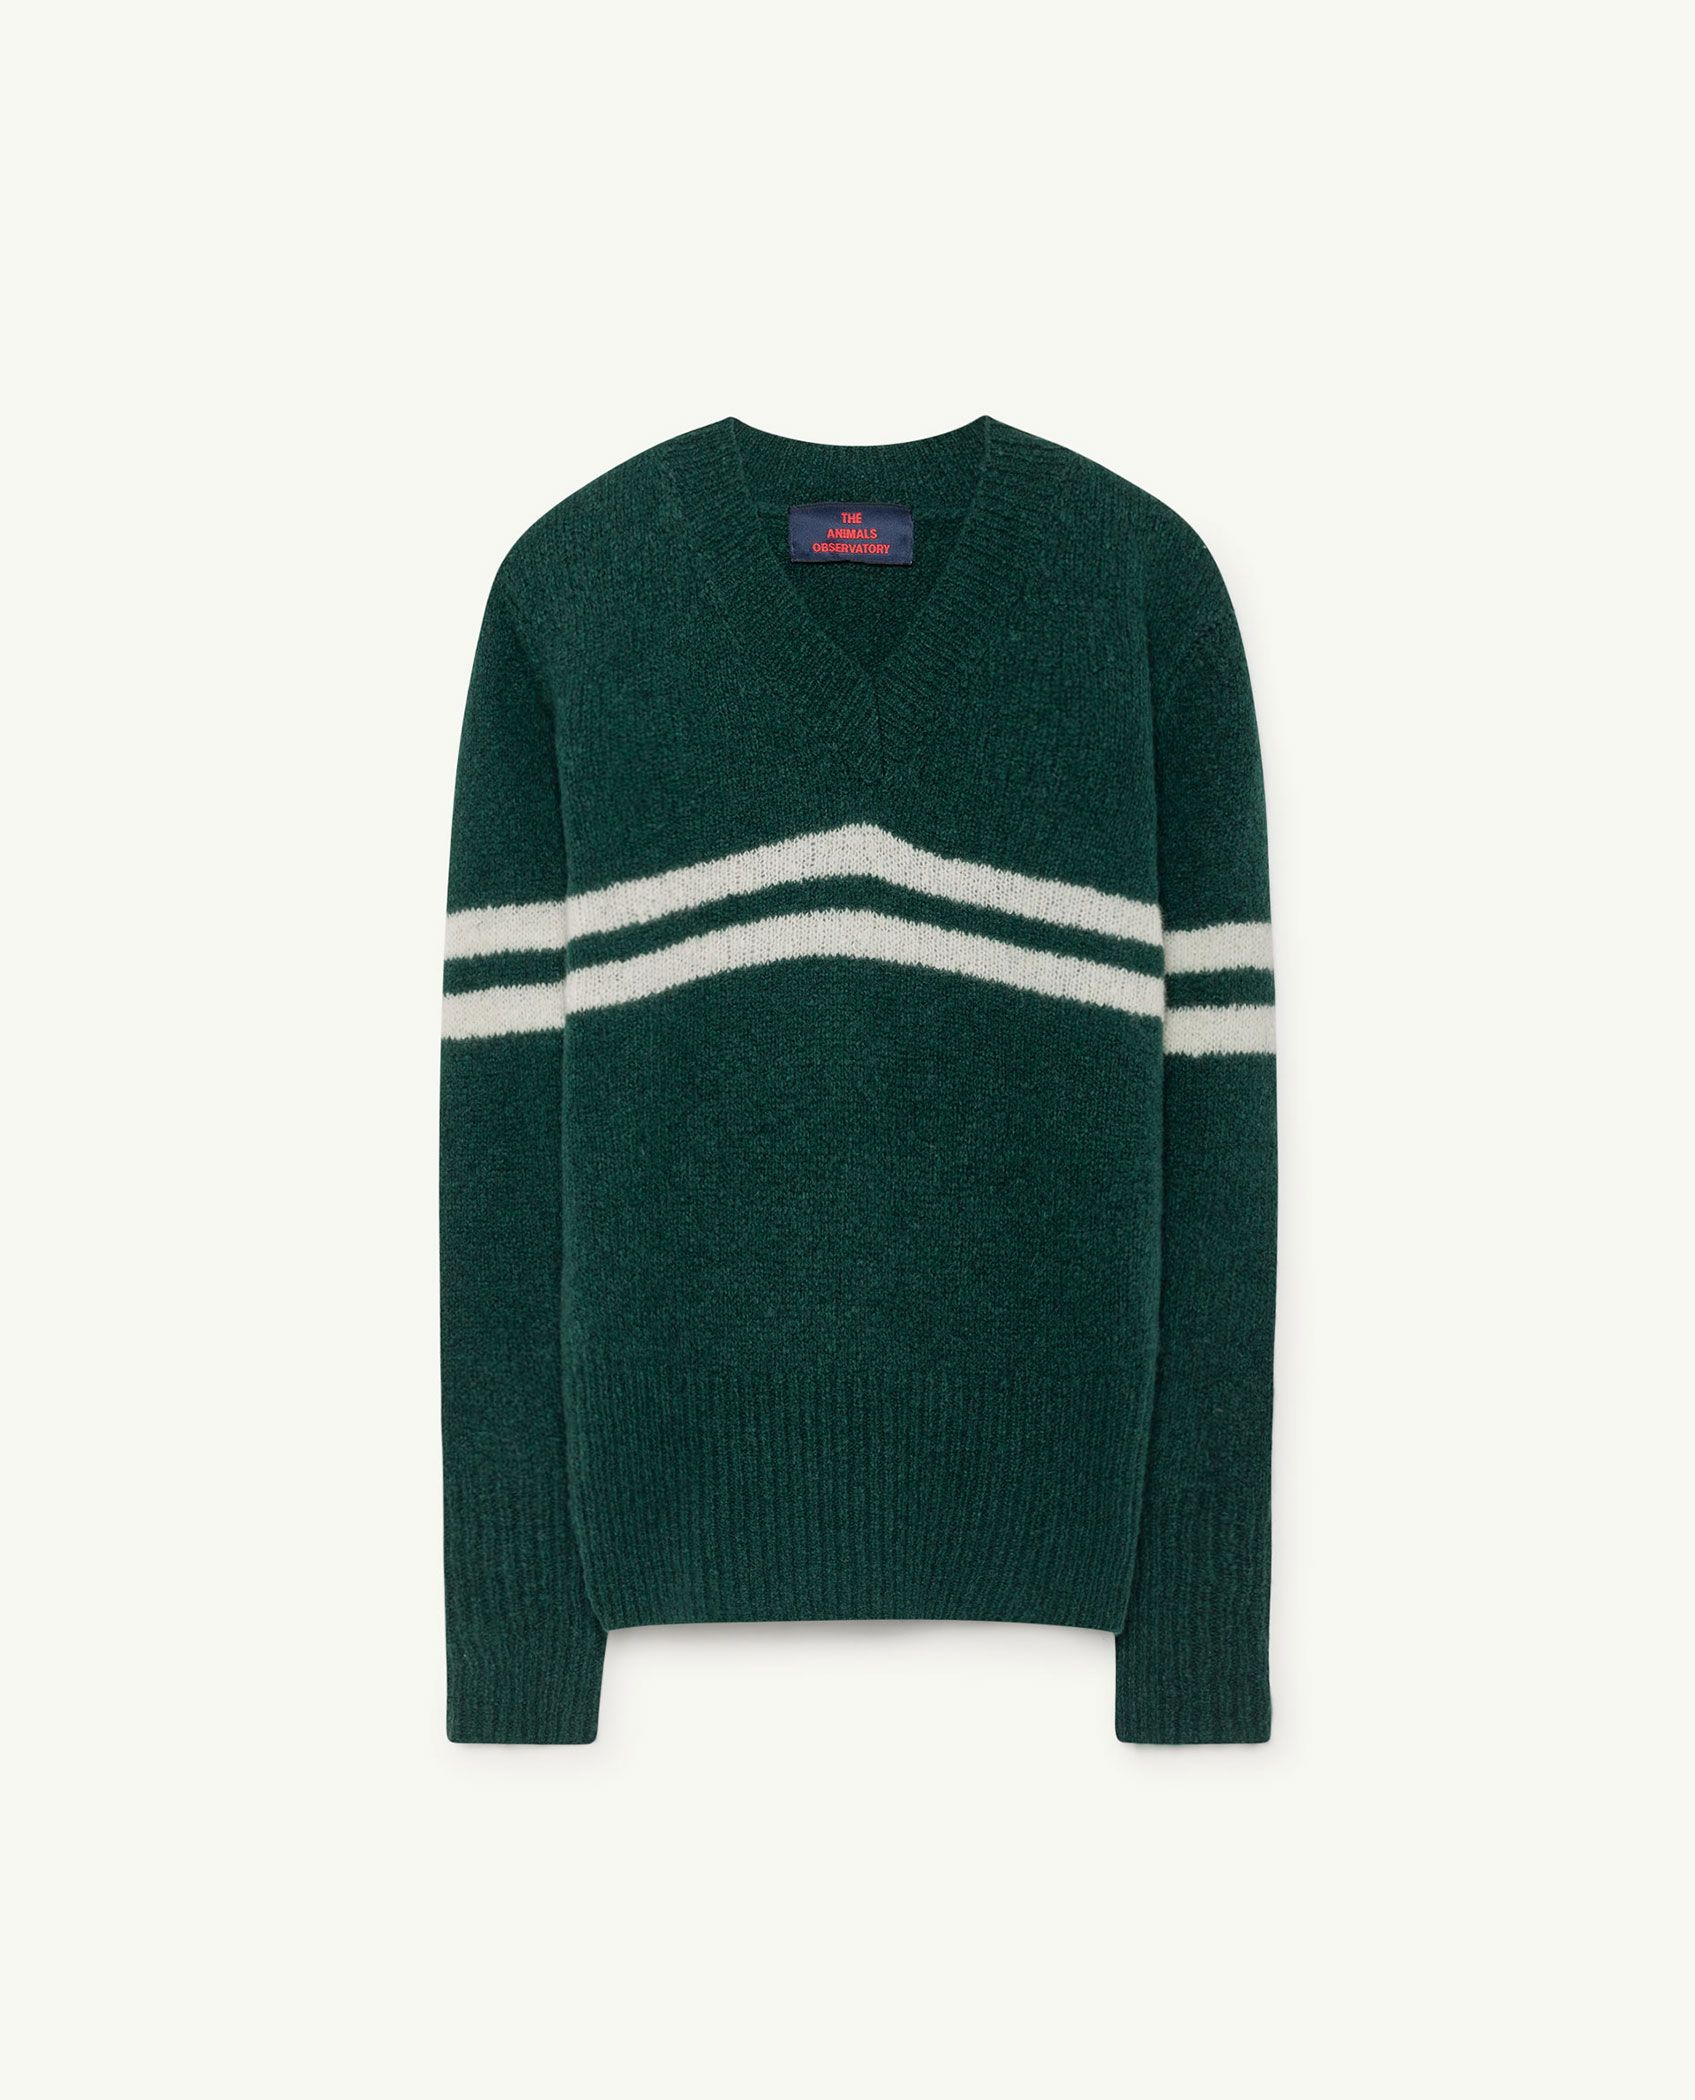 Green Toucan Sweater img-1